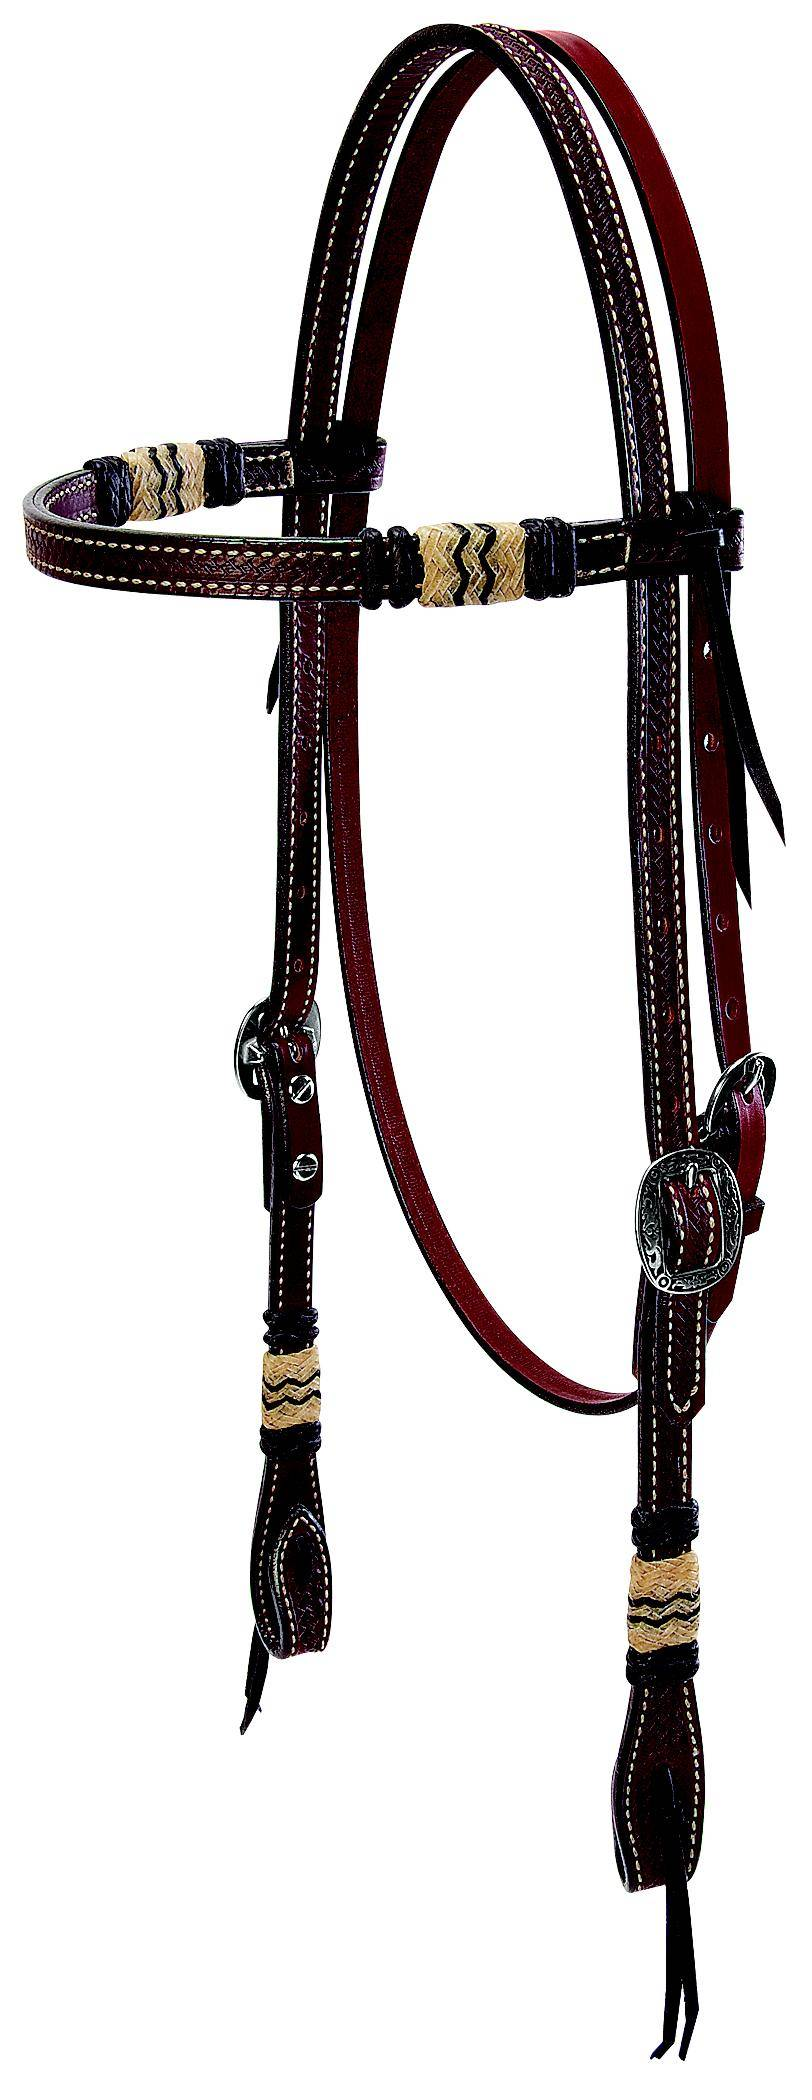 Weaver Leather Basketweave Browband Headstall With Accents